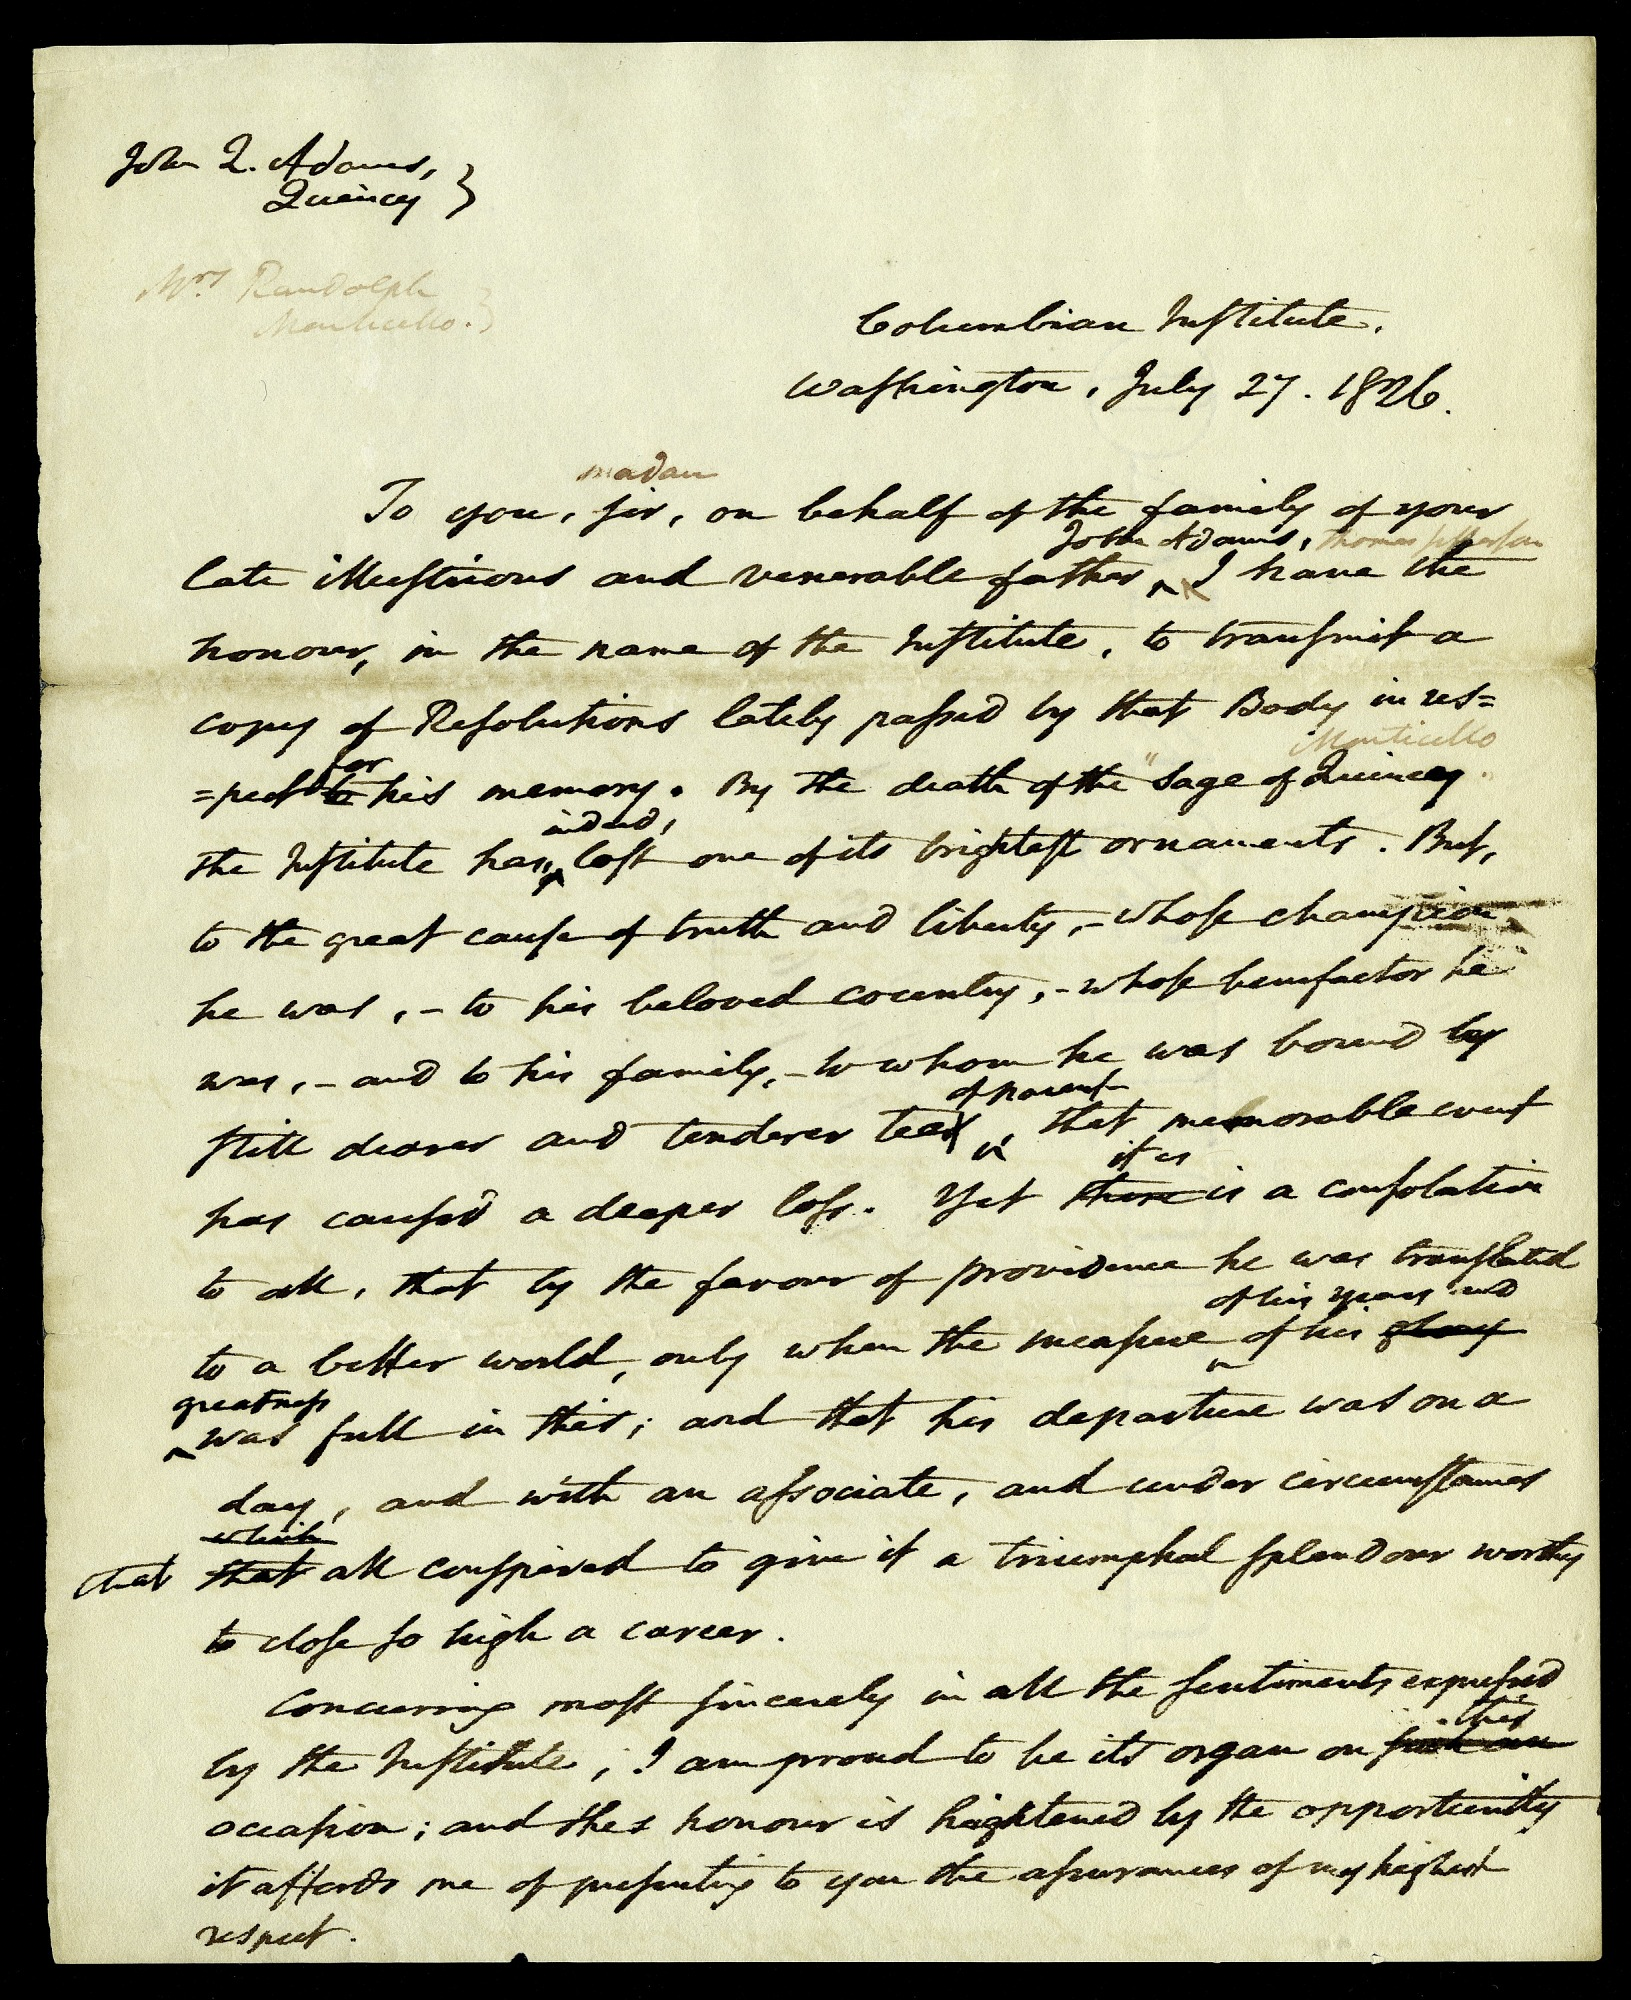 Form of a letter from Asbury Dickens to John Quincy Adams and M. Randolph, July 27, 1826